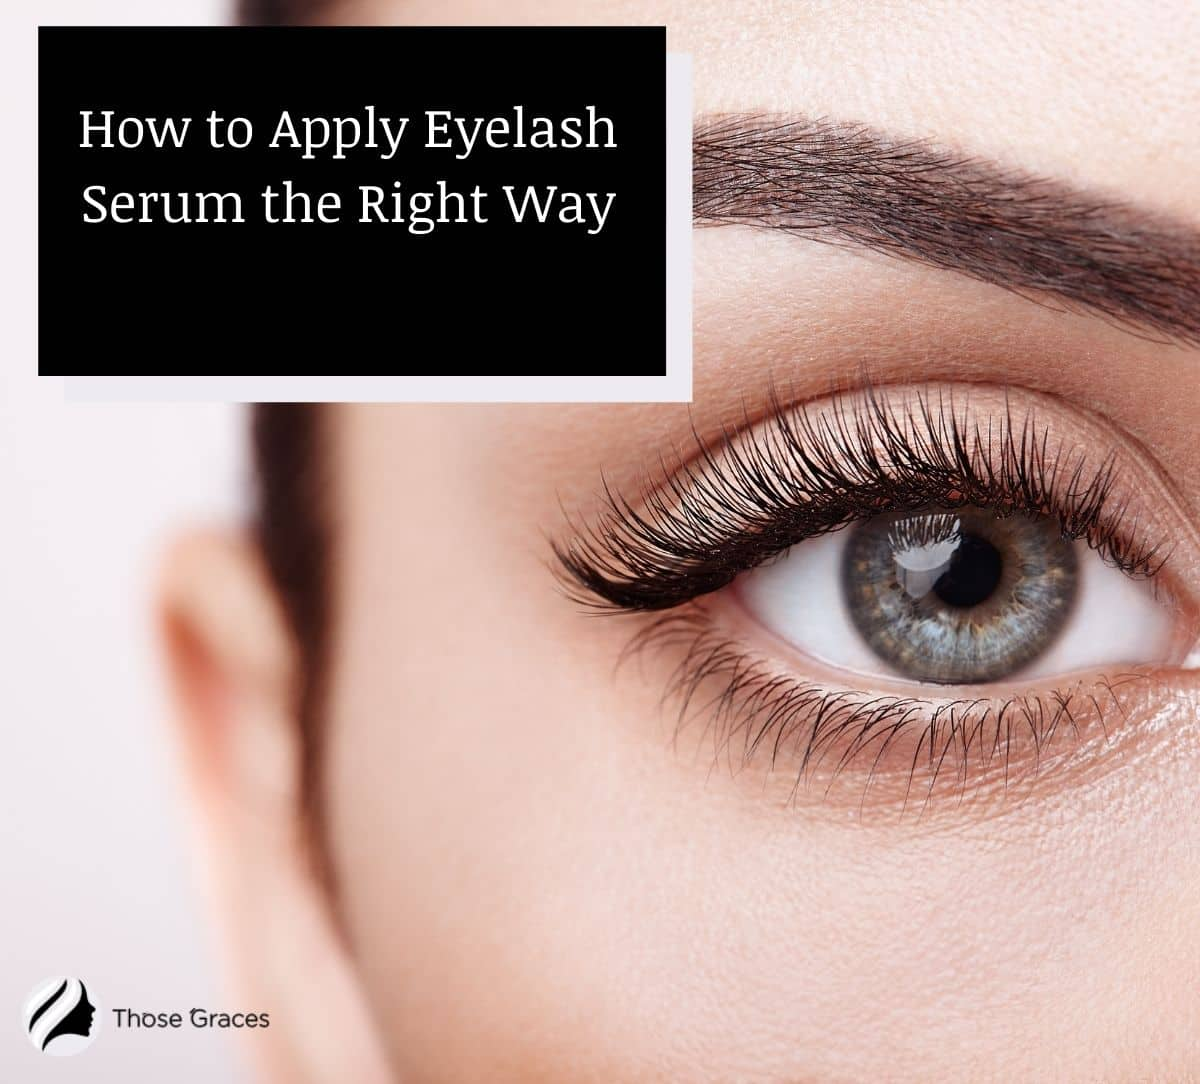 a lady with long lashes is wondering how how to apply eyelash serum